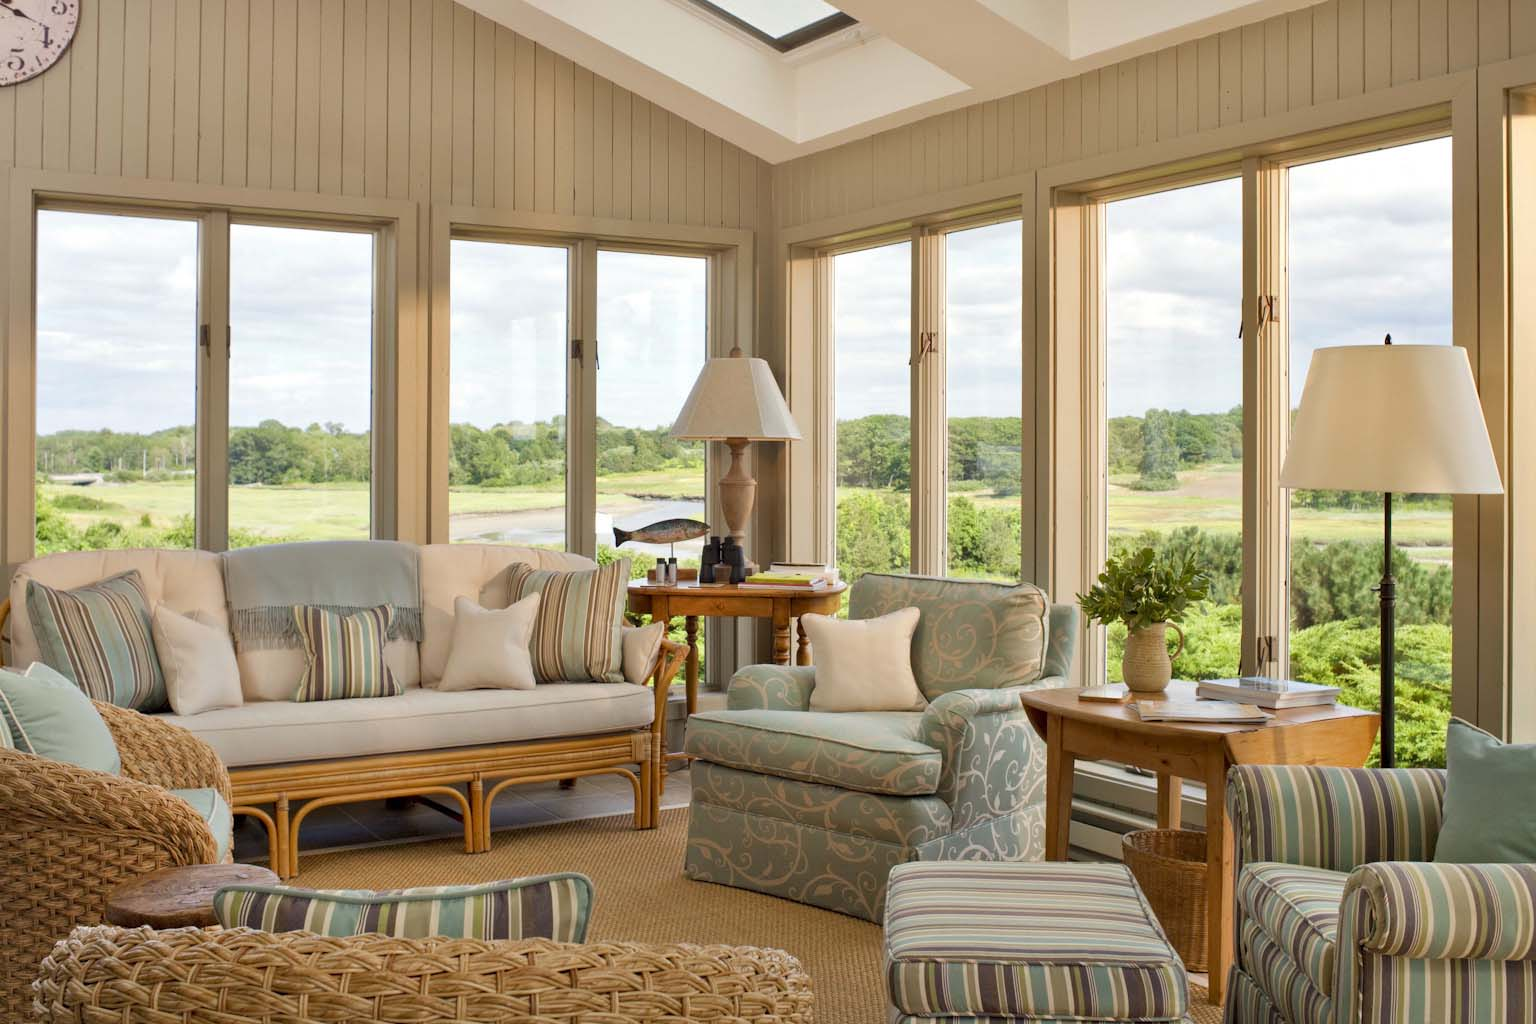 Images of image of indoor sunroom furniture interior indoor sunroom furniture